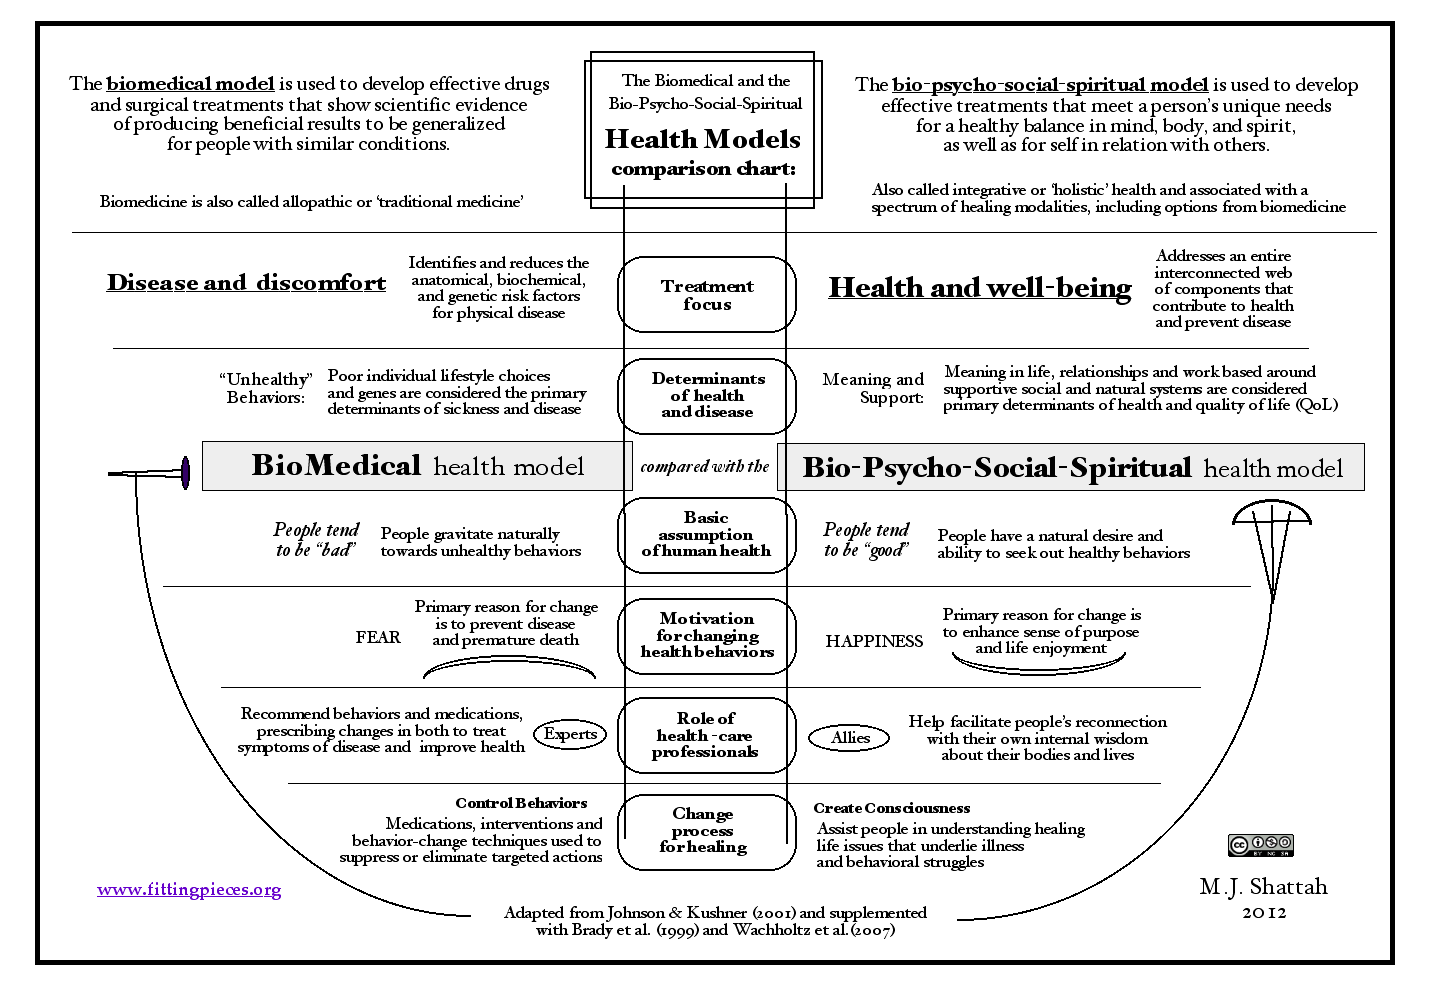 a person as a biopsychosocial Biopsychosocial vs biomedical model of health medicine the biomedical model and the biopsychosocial model are both representations of health commonly accepted in modern the biopsychosocial model takes into account the whole person which has led to extensive research in many aspects of.